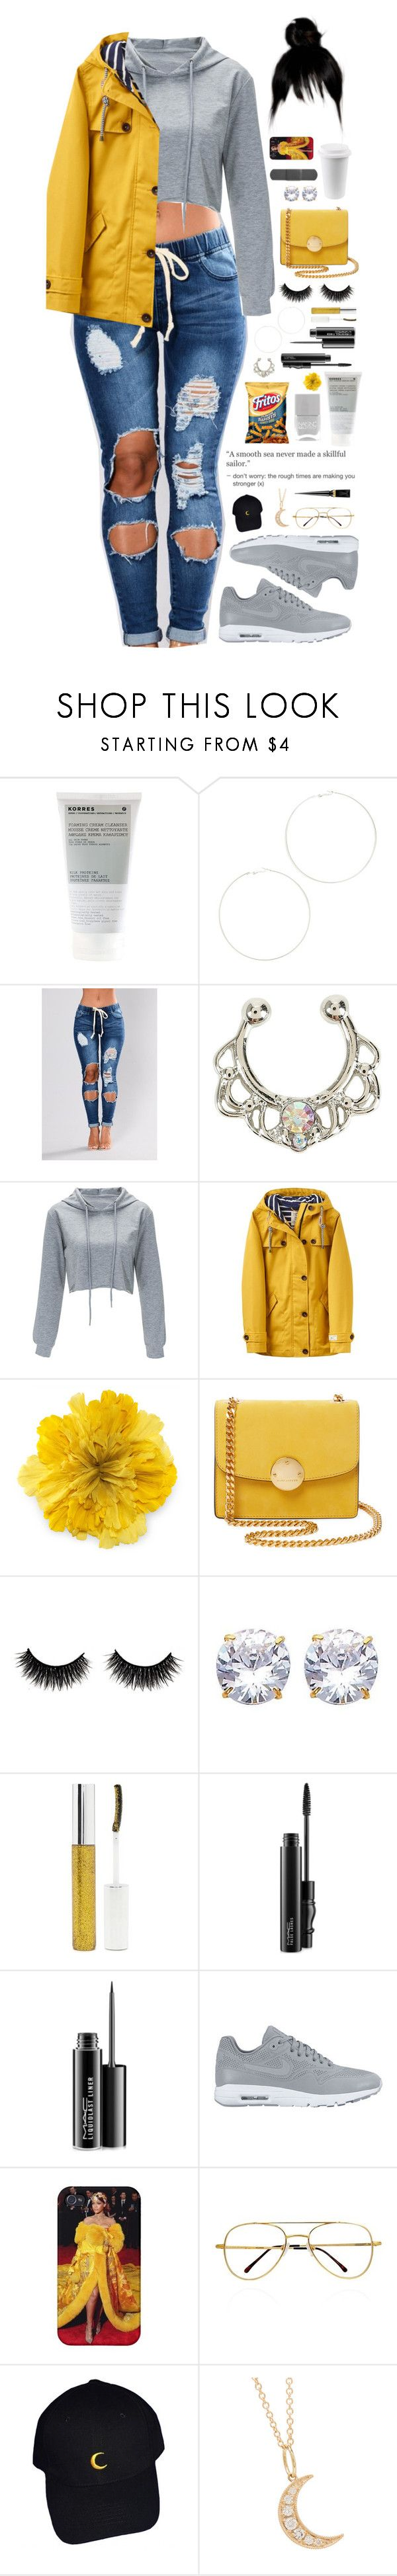 """rough times."" by dyciana ❤ liked on Polyvore featuring Nails Inc., Korres, Kenneth Jay Lane, Hot Topic, Joules, Gucci, Marc Jacobs, Forever 21, MAC Cosmetics and NIKE"